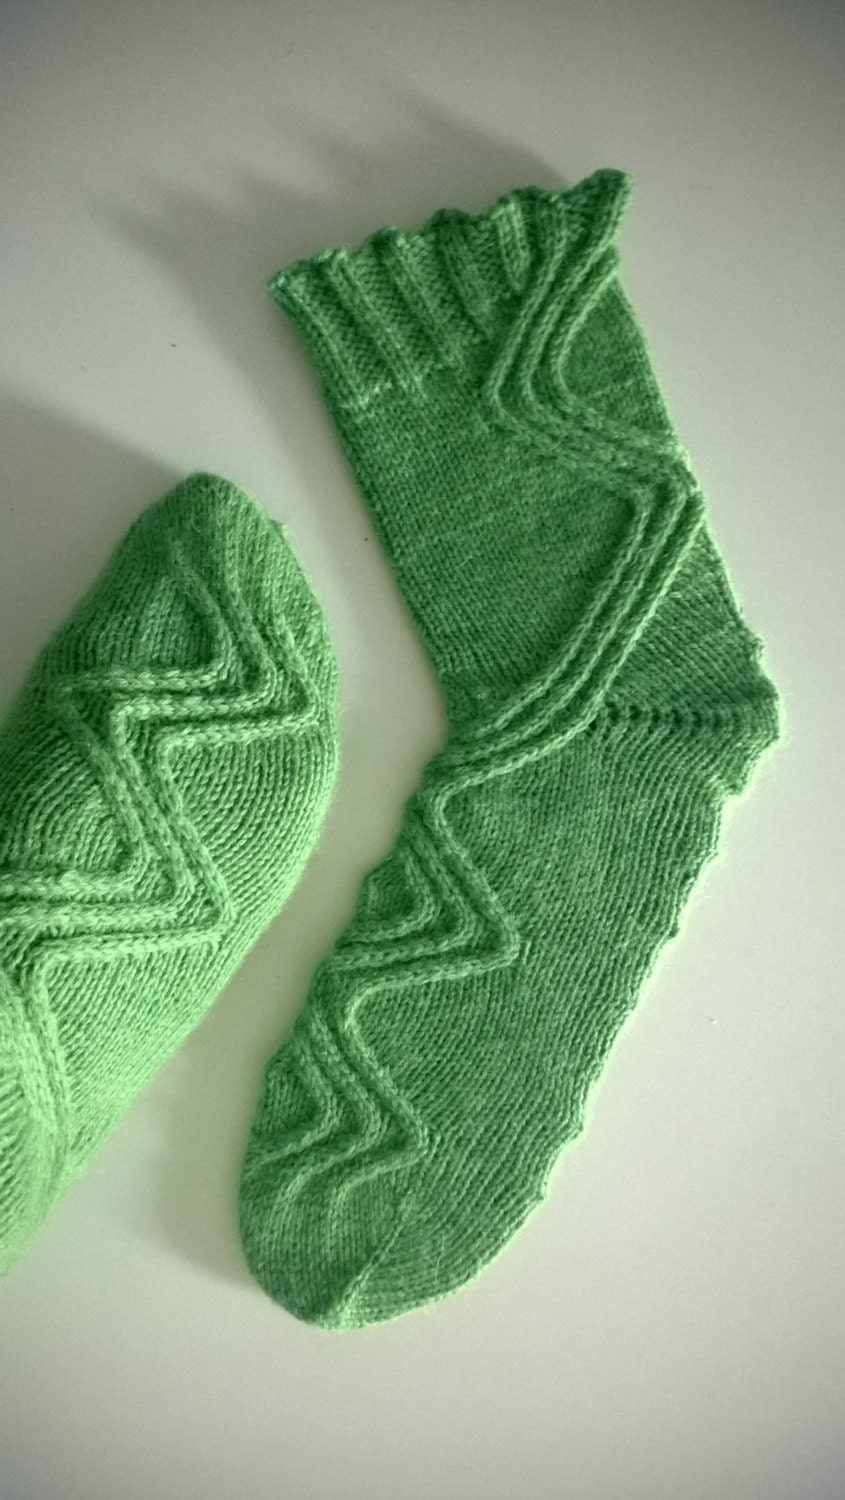 Knitting Pattern For Tardis Socks : Doctor Who Cable Socks Knitting Pattern. Run You Clever Boy